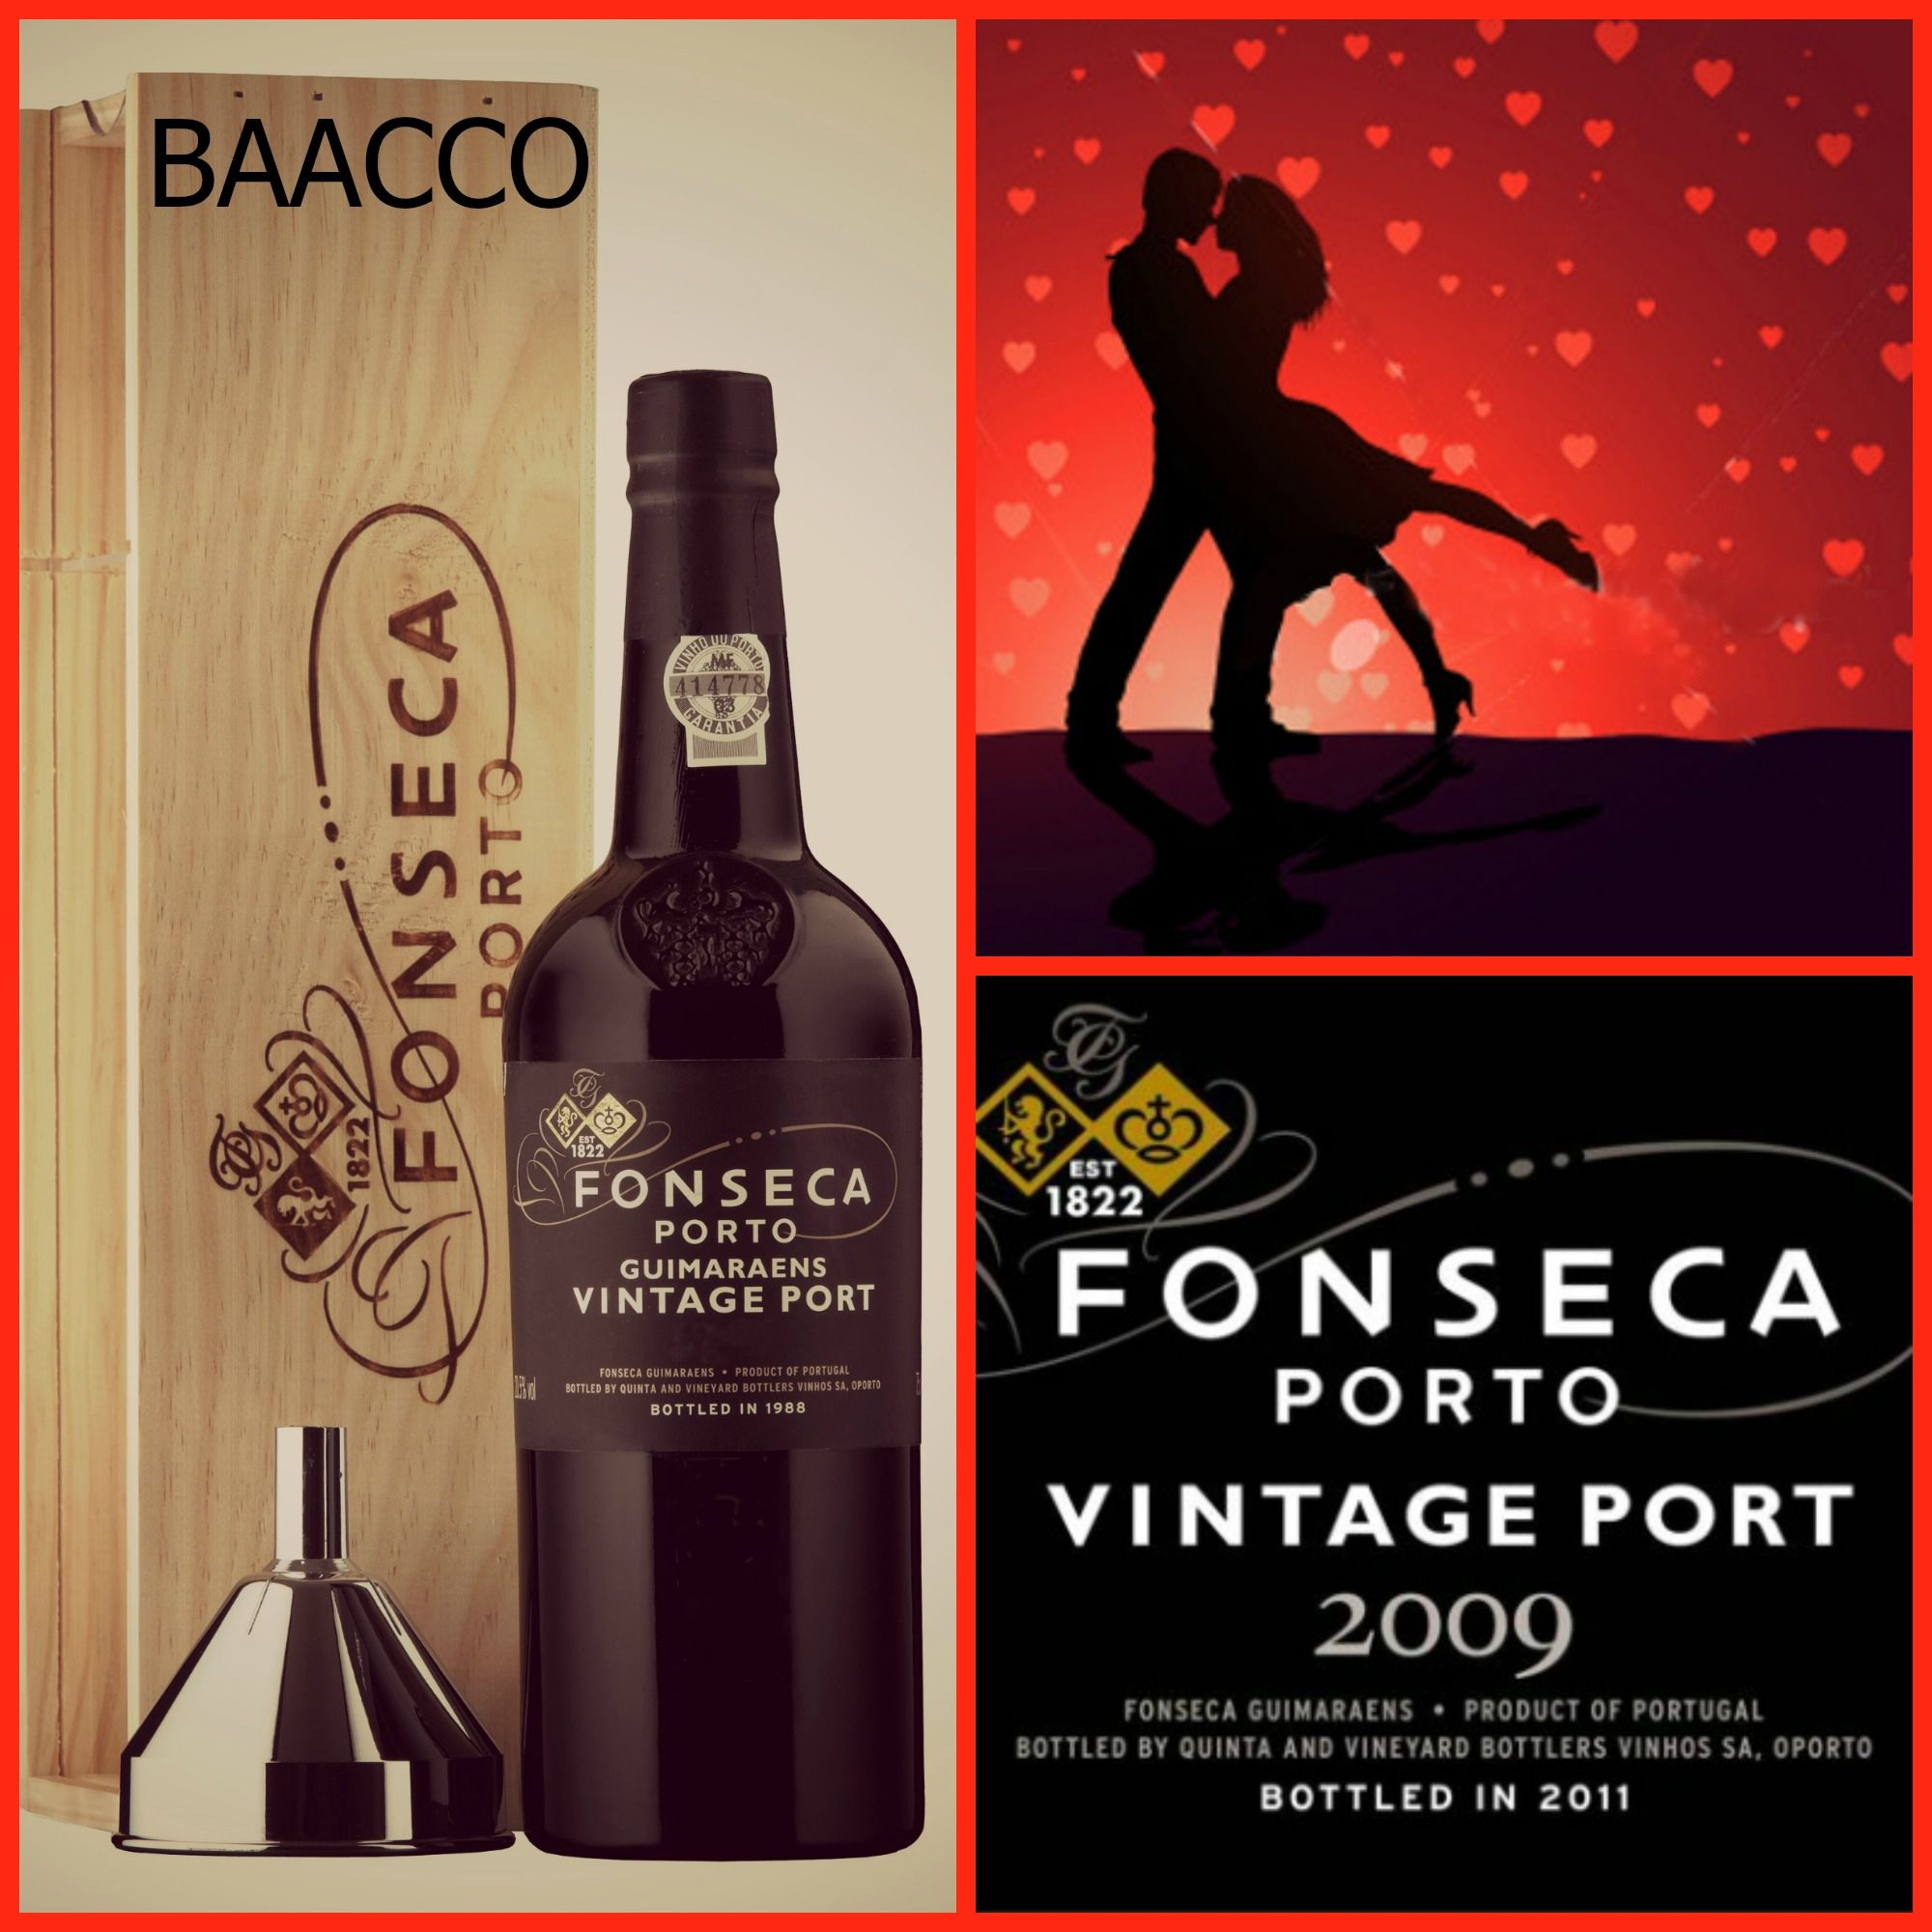 Treat Her This Valentinesday With This Port Fonseca Vintage 2009 And Some Chocolate A Superb Combination Wi Wine Bottle Alcoholic Drinks Bottle